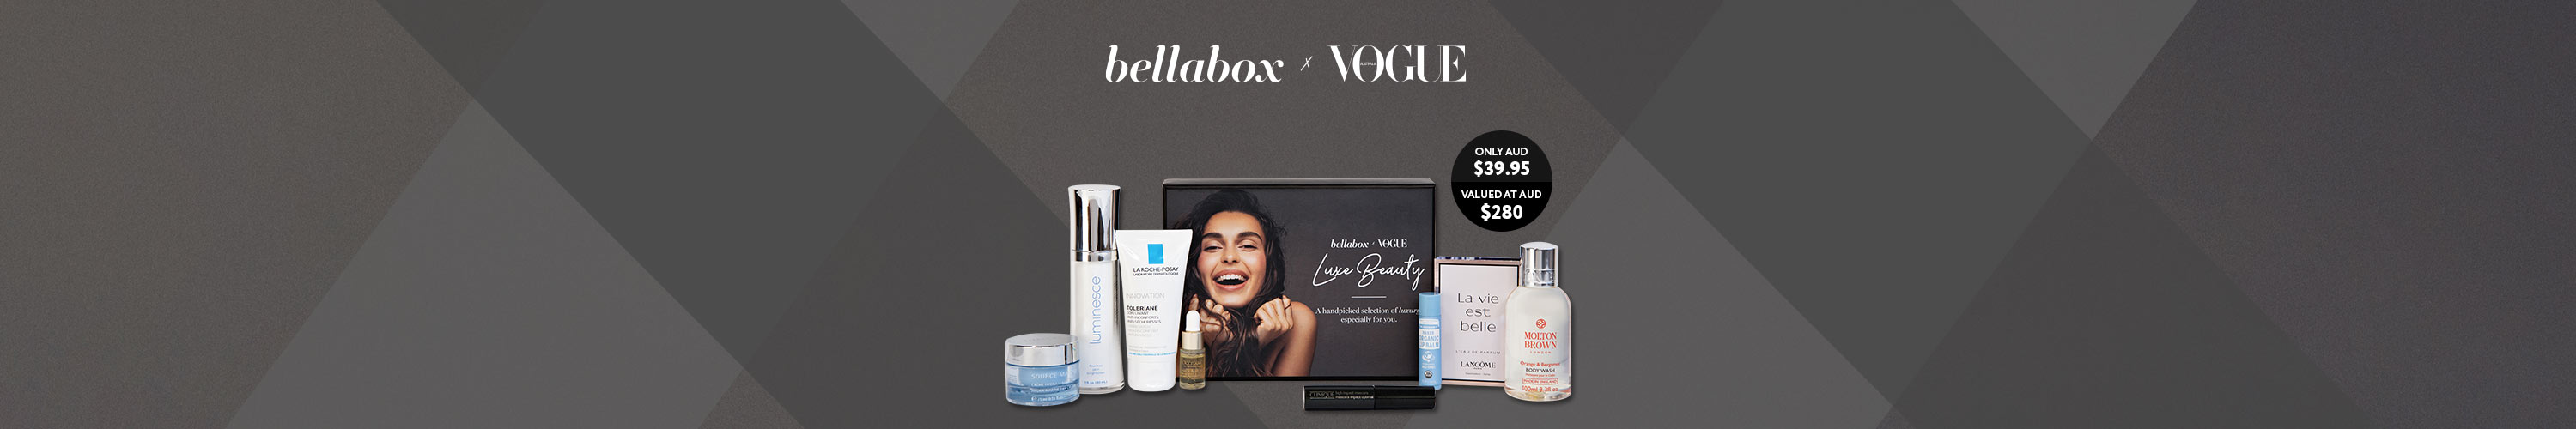 bellabox x vogue